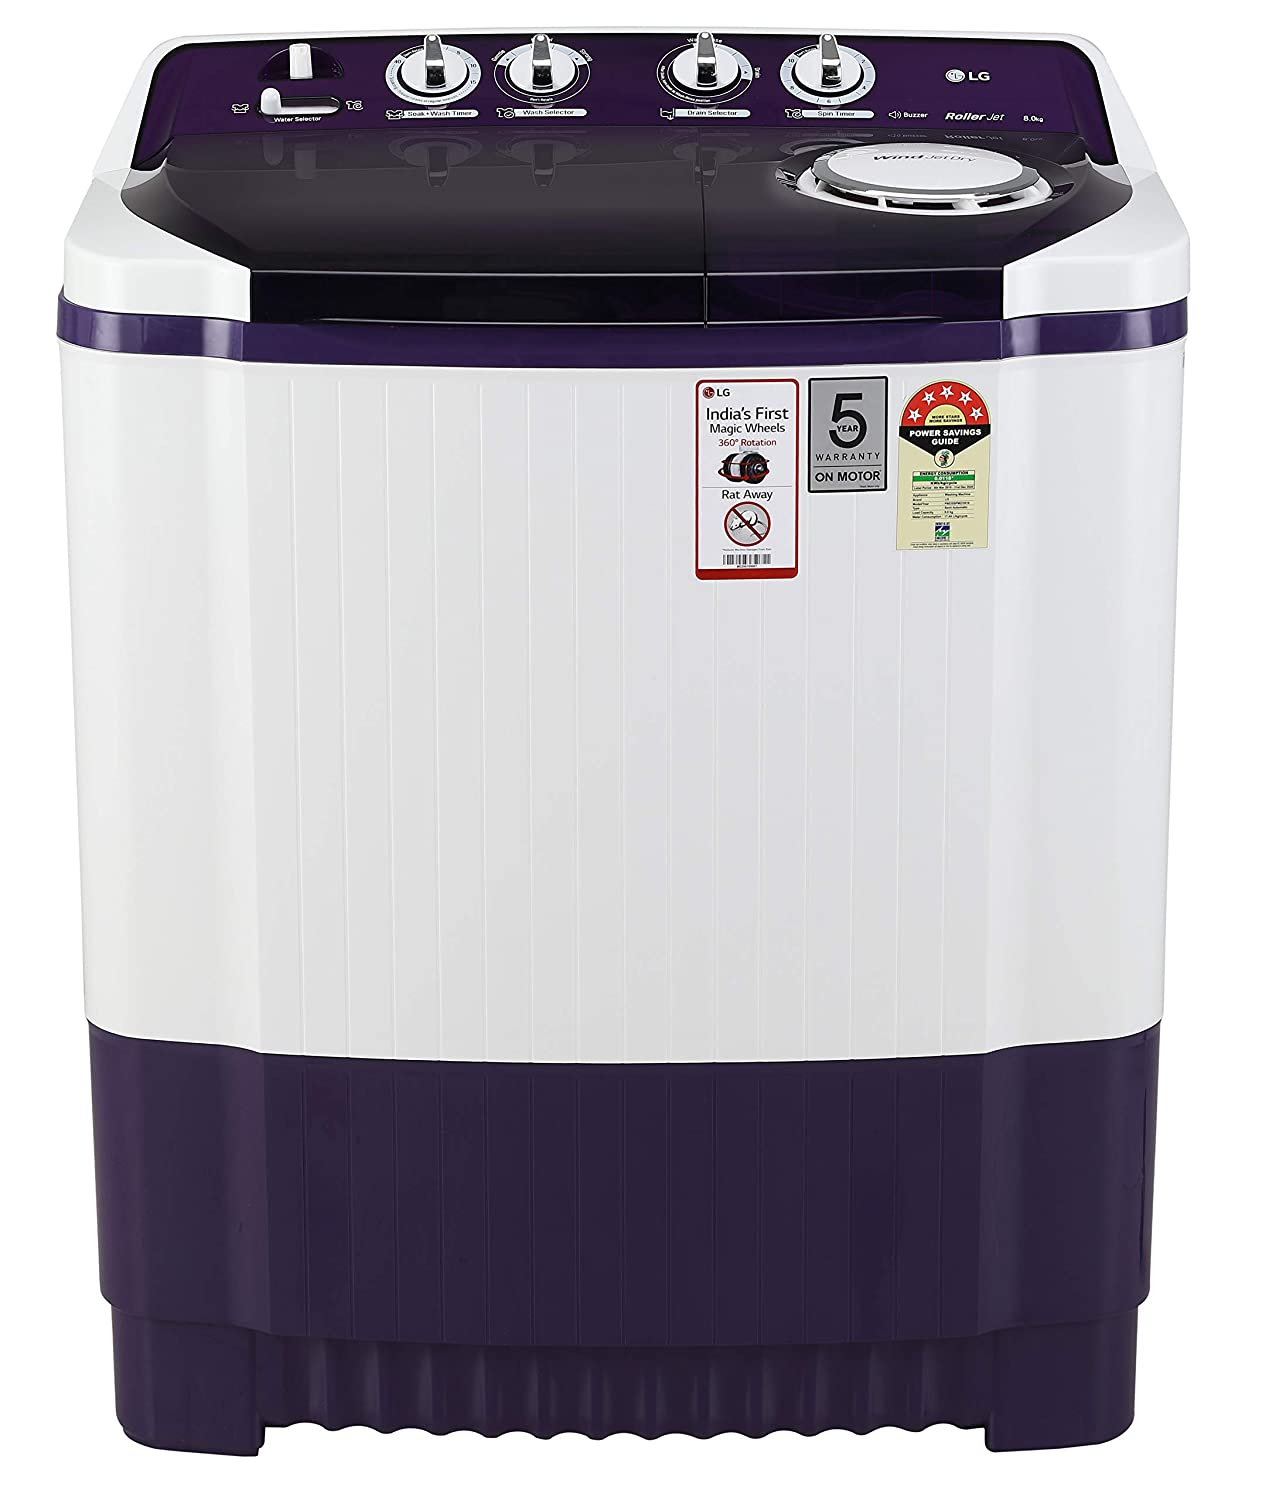 portable washing machine with 200 gram of detergent free